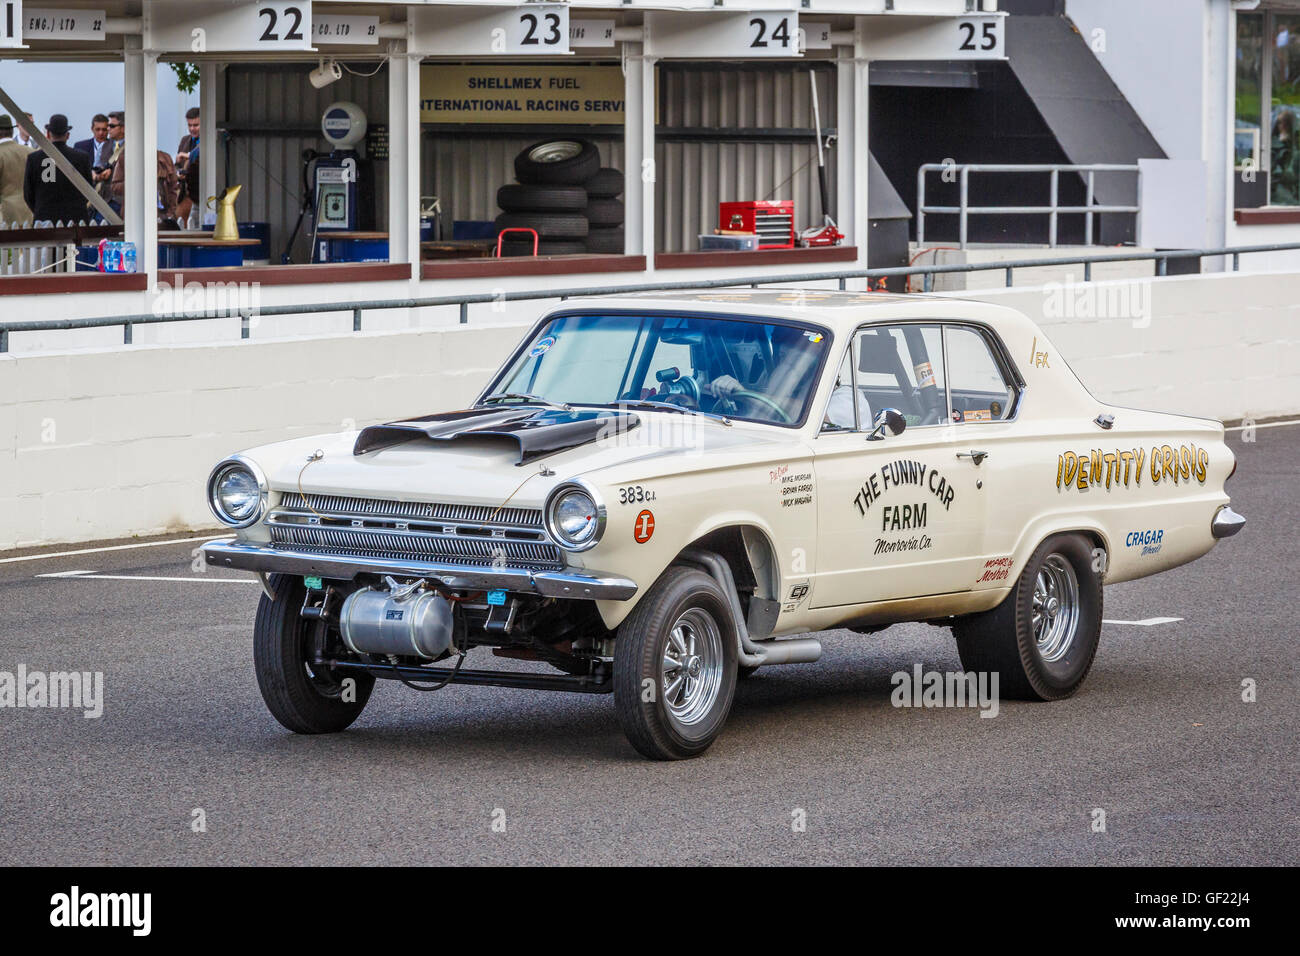 Dodge Dart Stock Photos Images Alamy 1964 Gts Identity Crisis 383cu Inch Gasser On Track At The 2015 Goodwood